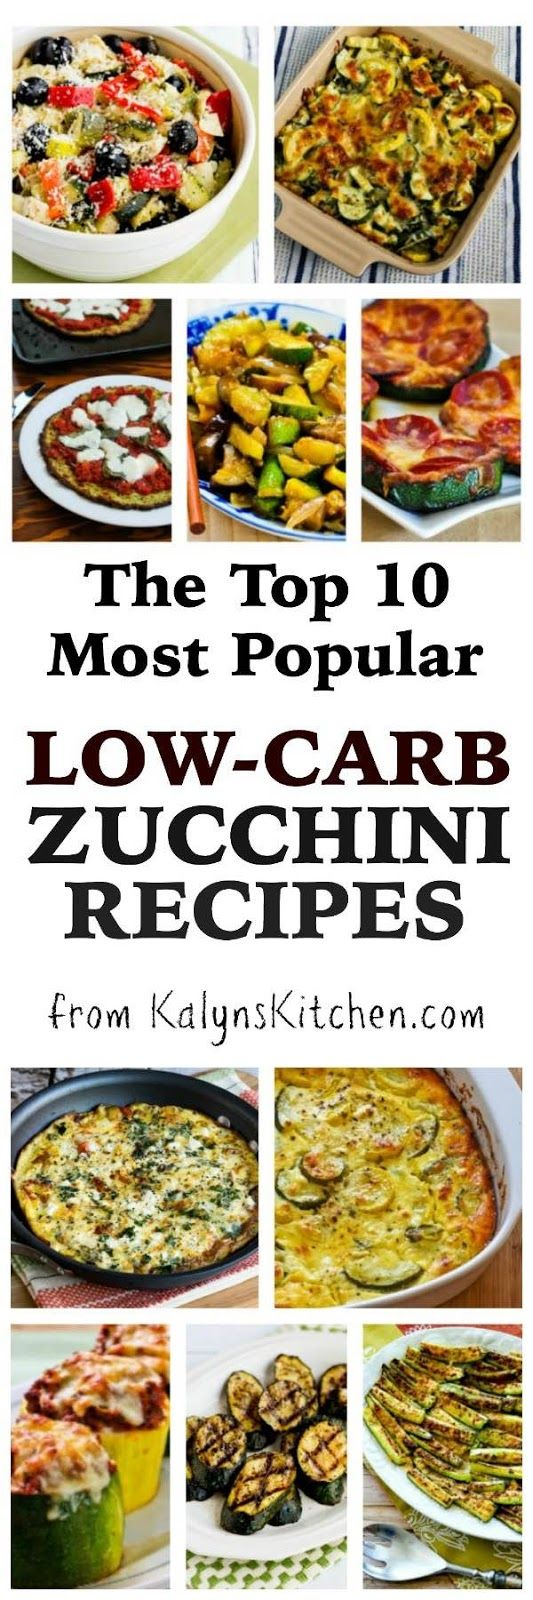 The Top Ten Most Popular Low Carb Zucchini Recipes From South Beach Diet Top Ten And Zucchini